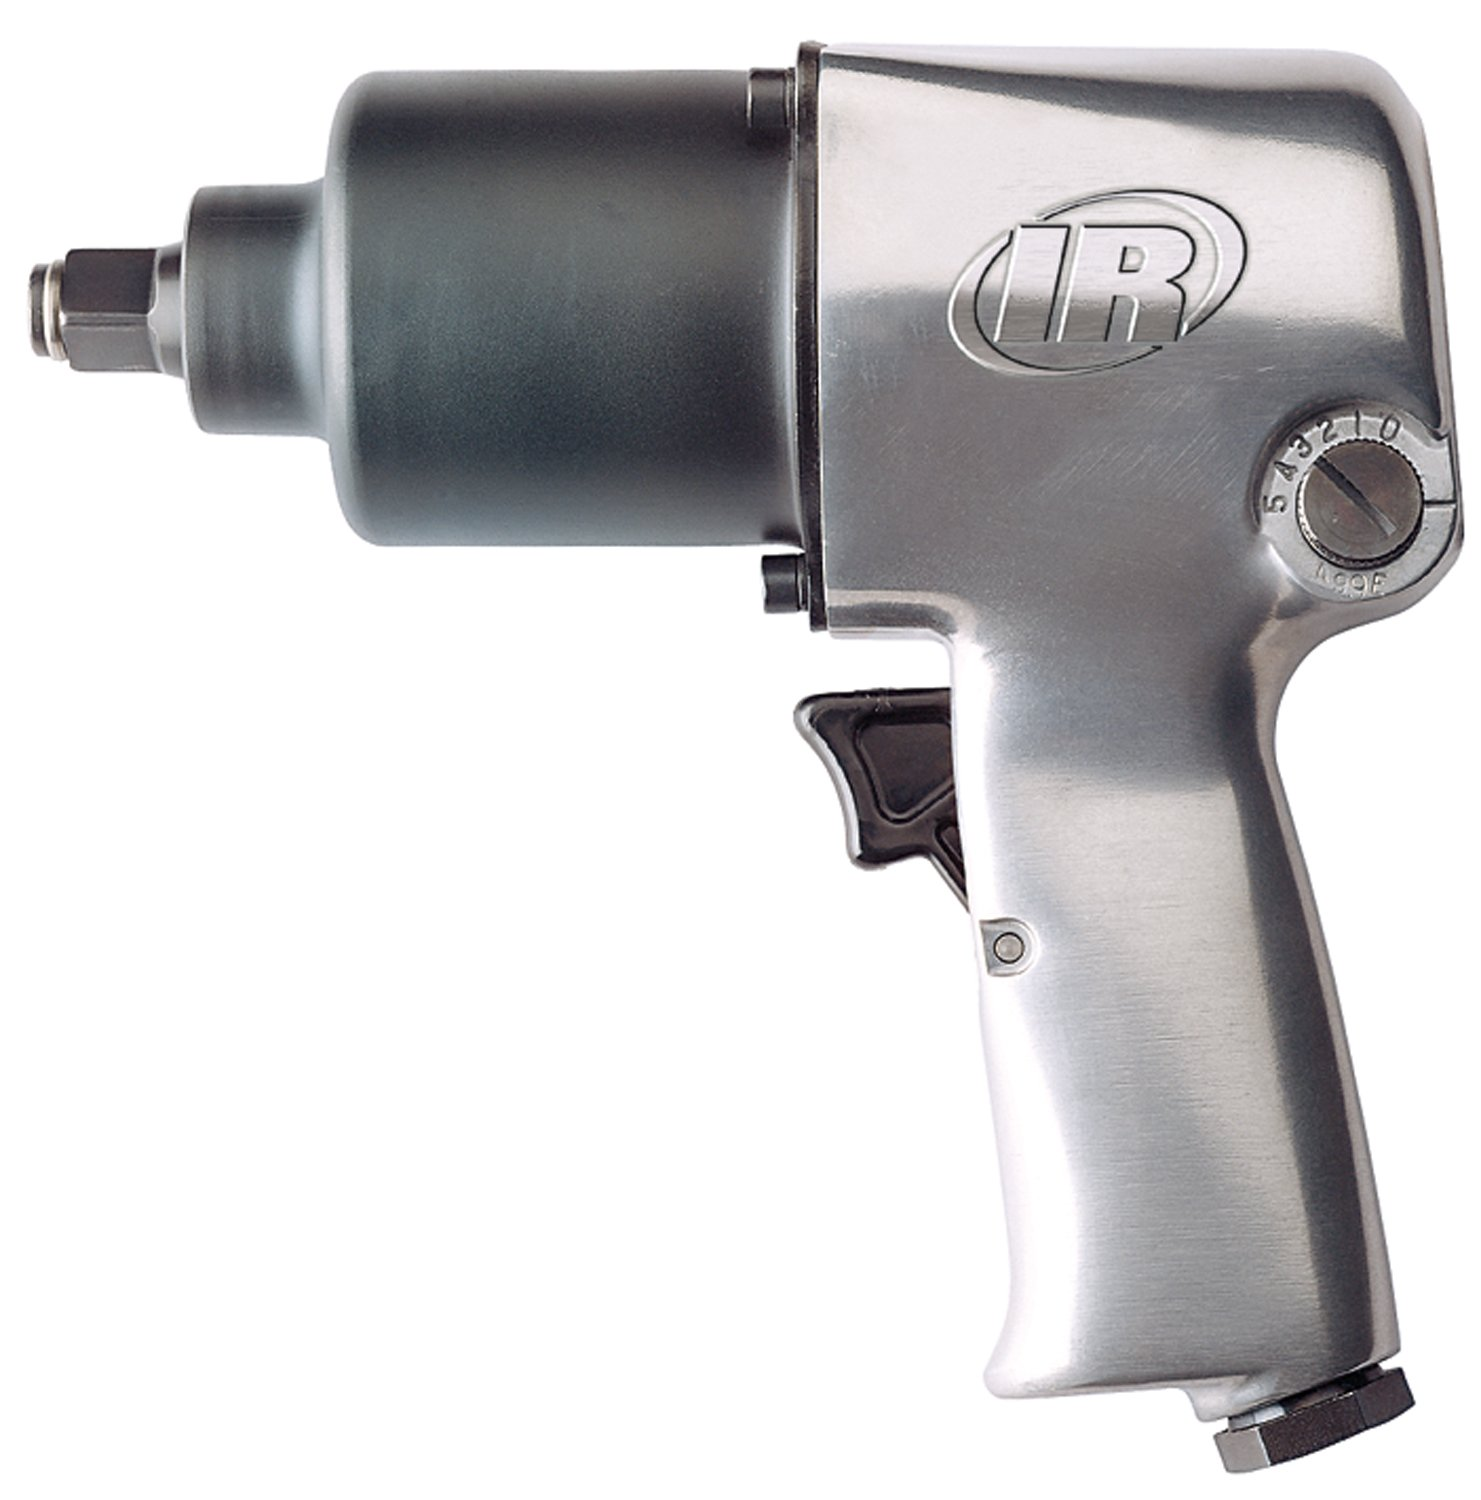 Ingersoll Rand 231C Super-Duty Air Impact Wrench, 1/2 Inch by Ingersoll-Rand